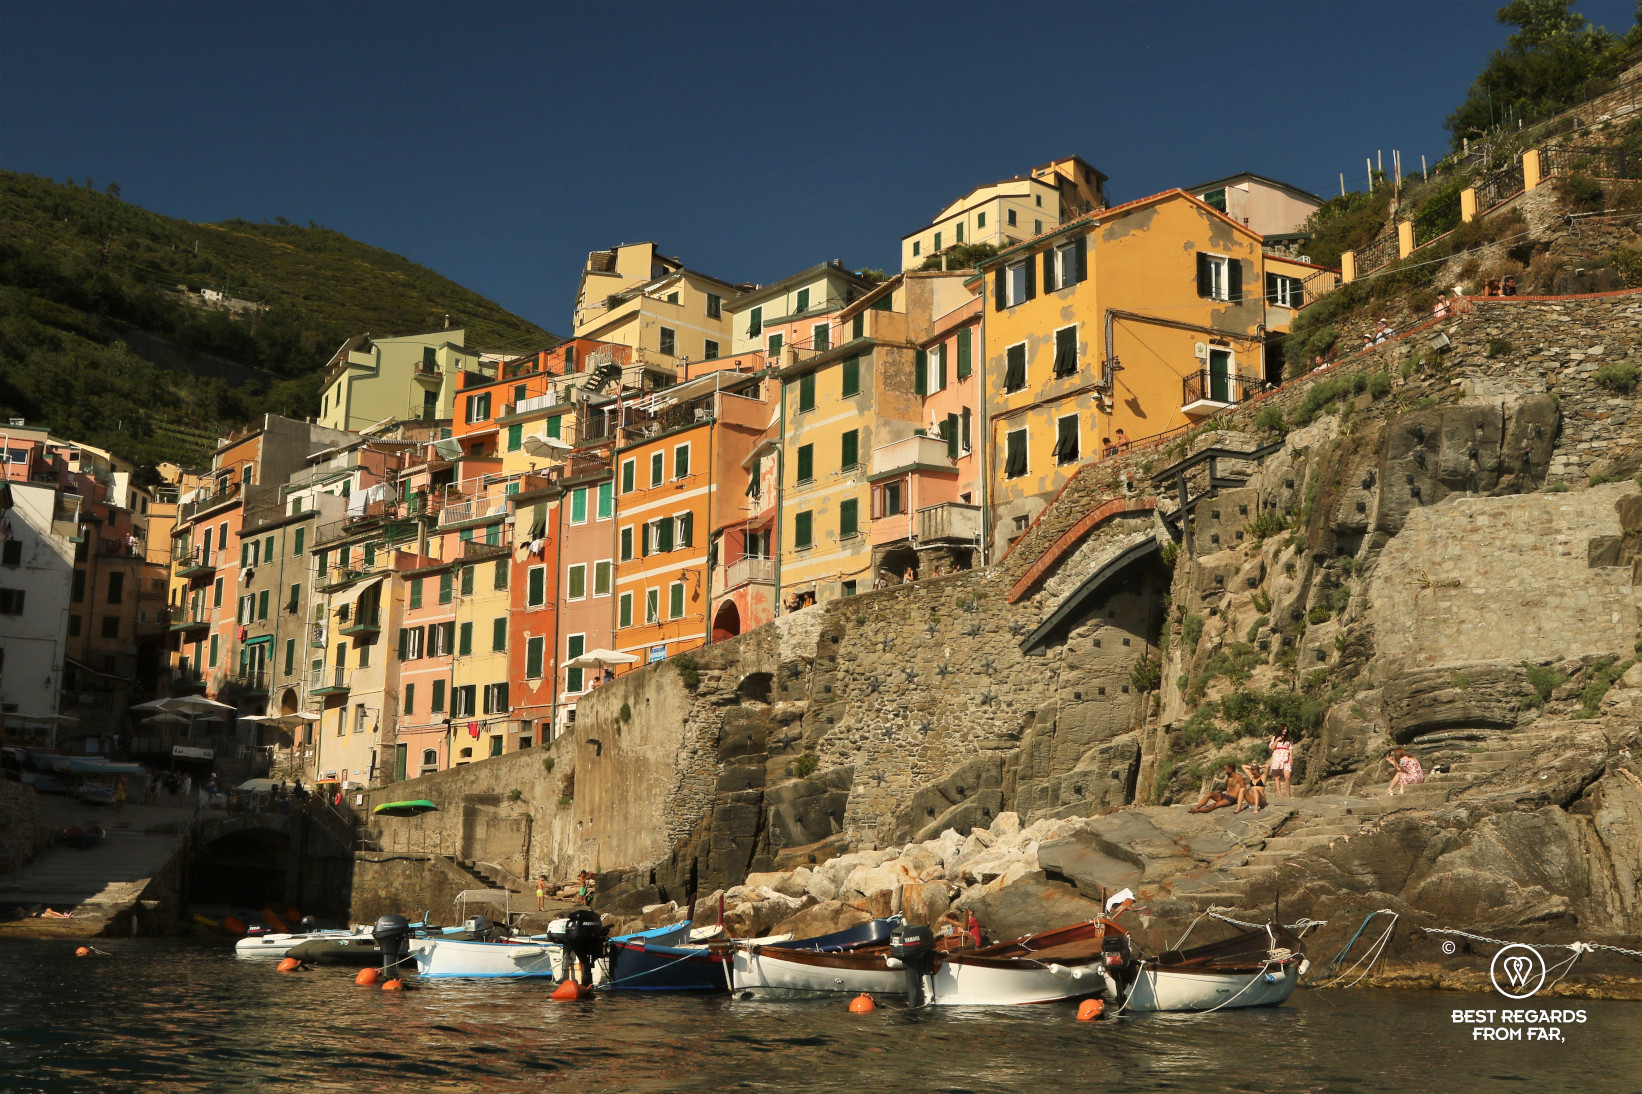 Sunset light on the houses of Riomaggiore